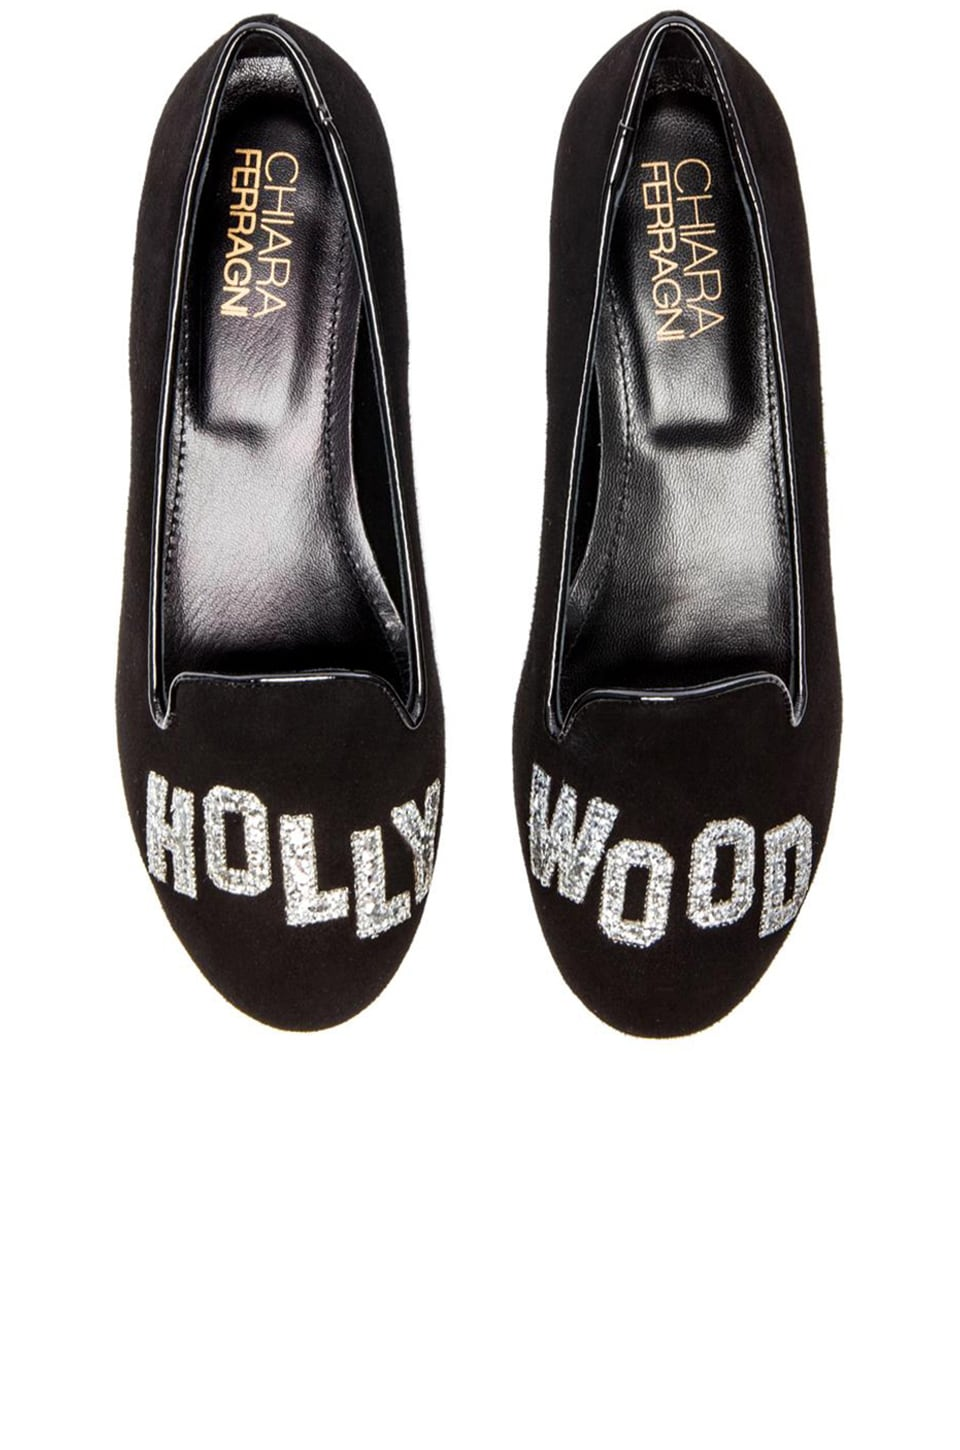 Chiara Ferragni Hollywood Flat in Black